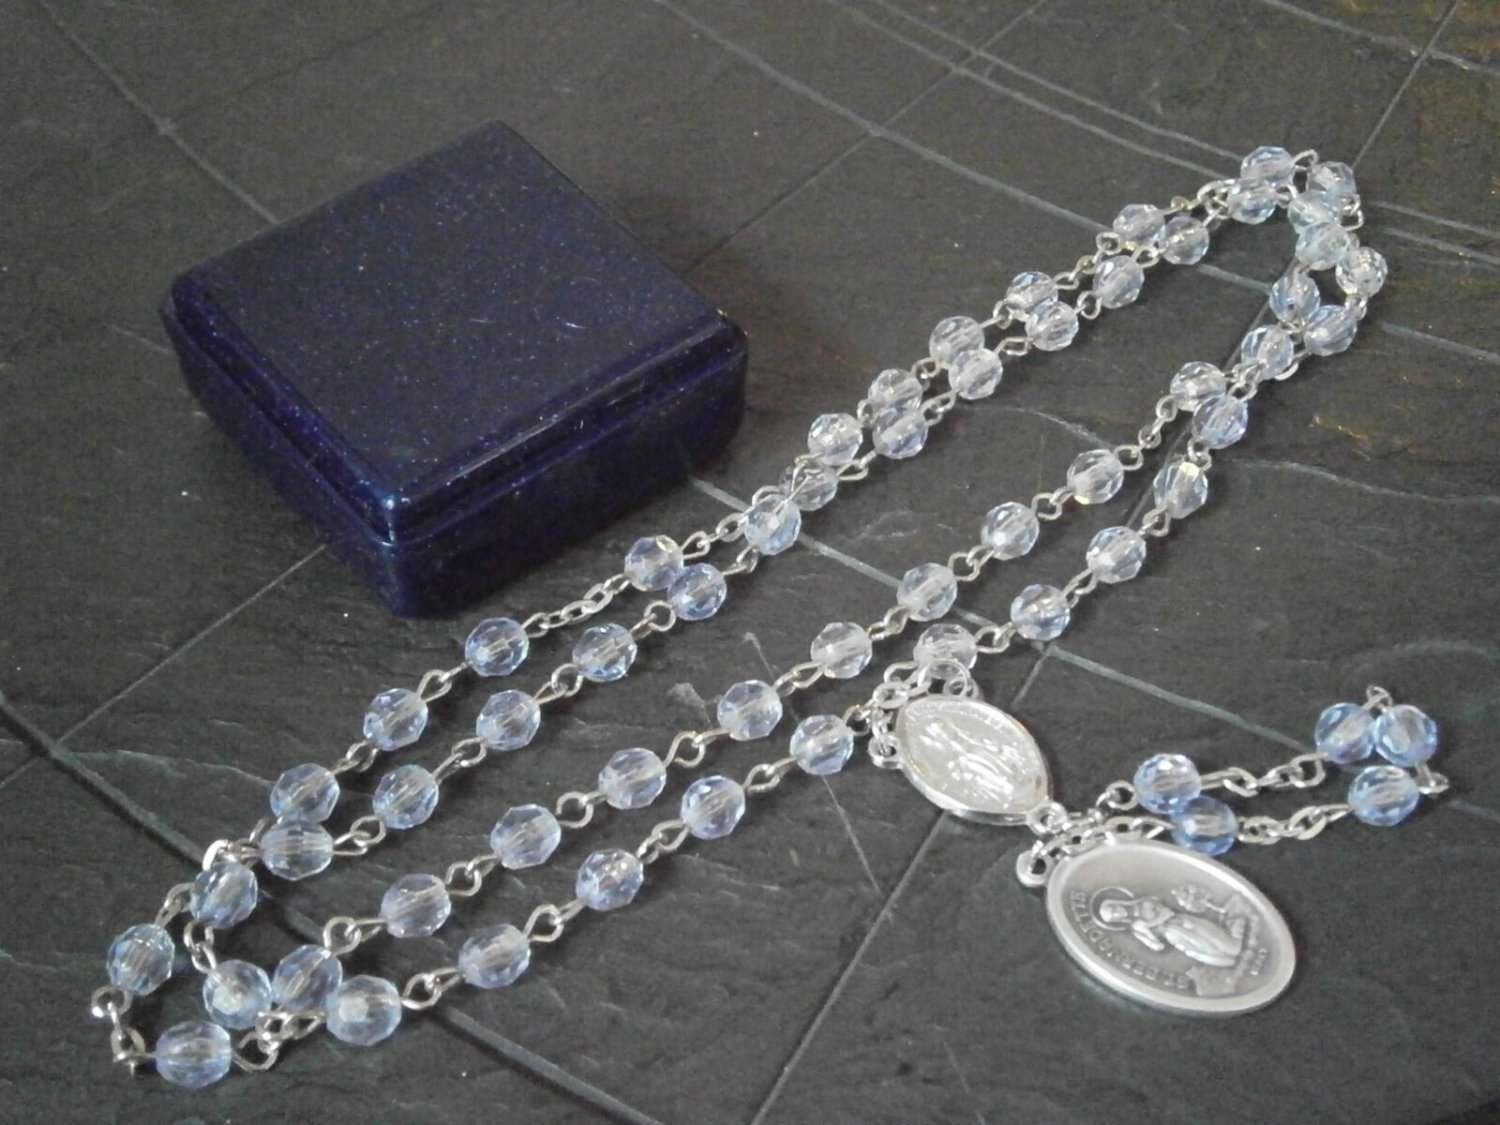 ROSARY NECKLACE with medal of Saint Bernadette Soubirous Original 1980s in gift box